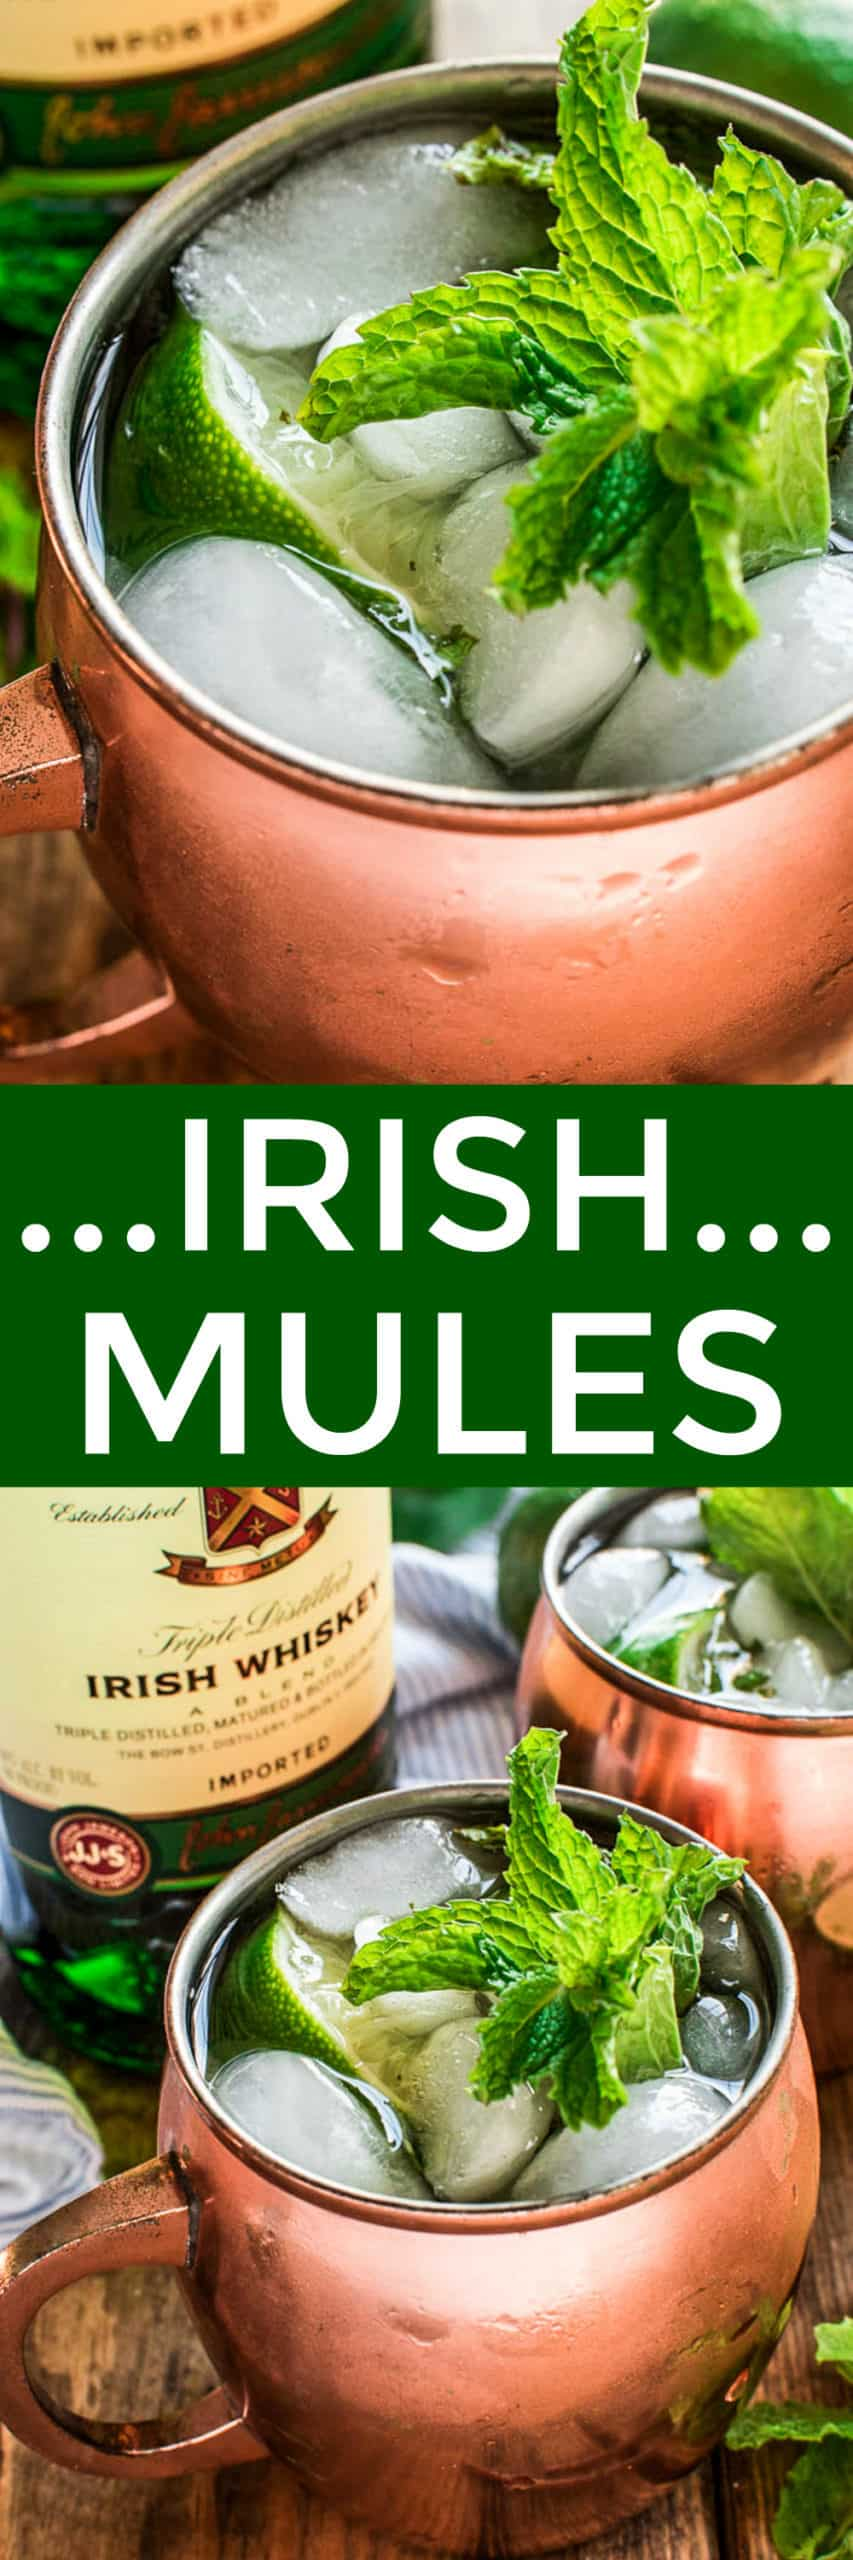 Collage image of Irish Mules in copper mugs